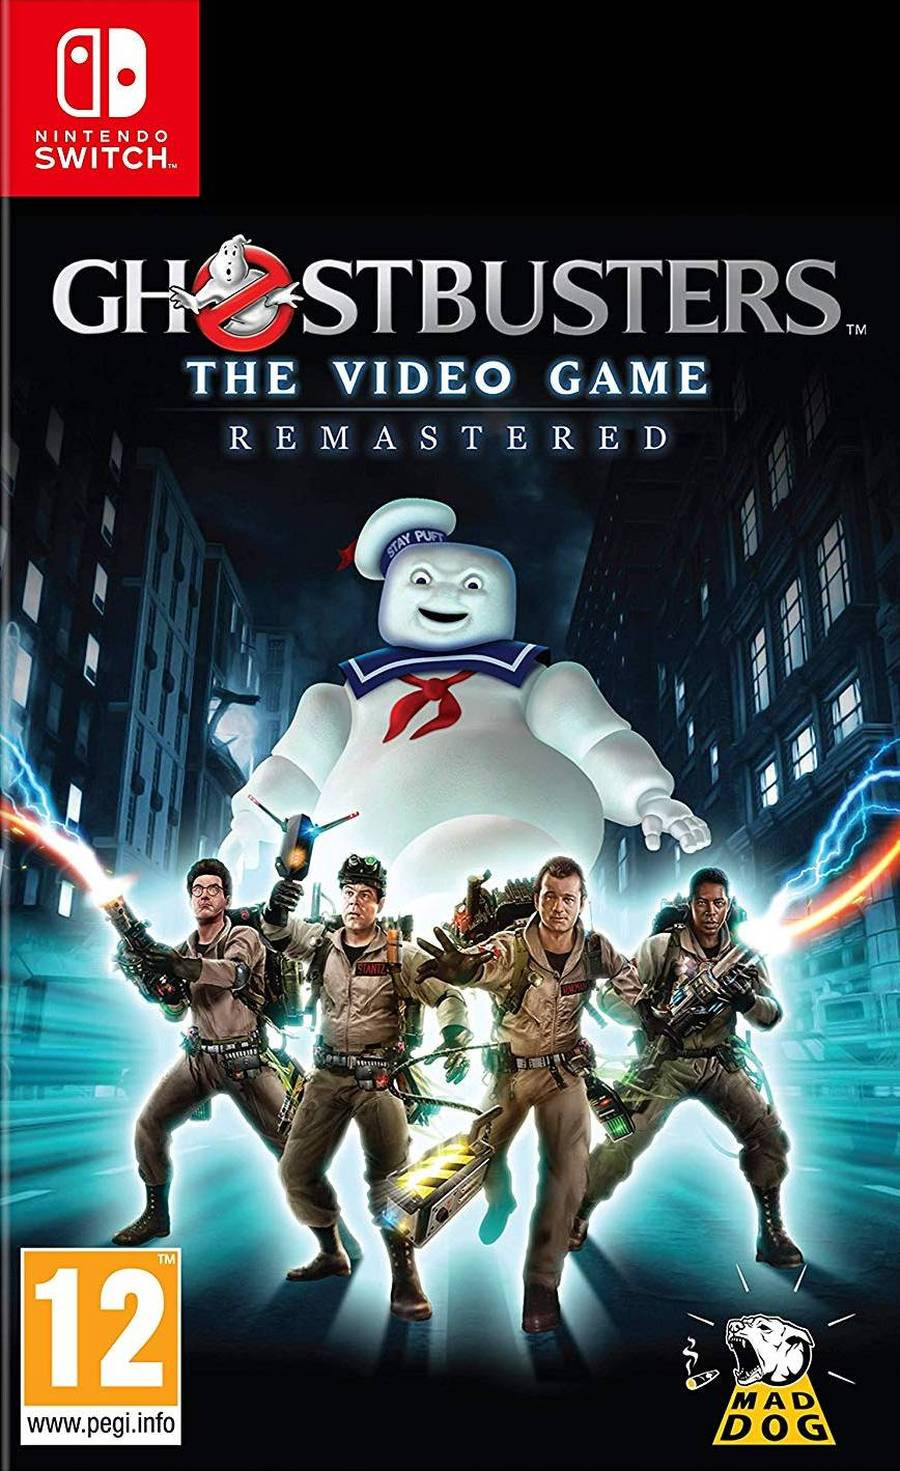 SWITCH Ghostbusters The Video Game - Remastered